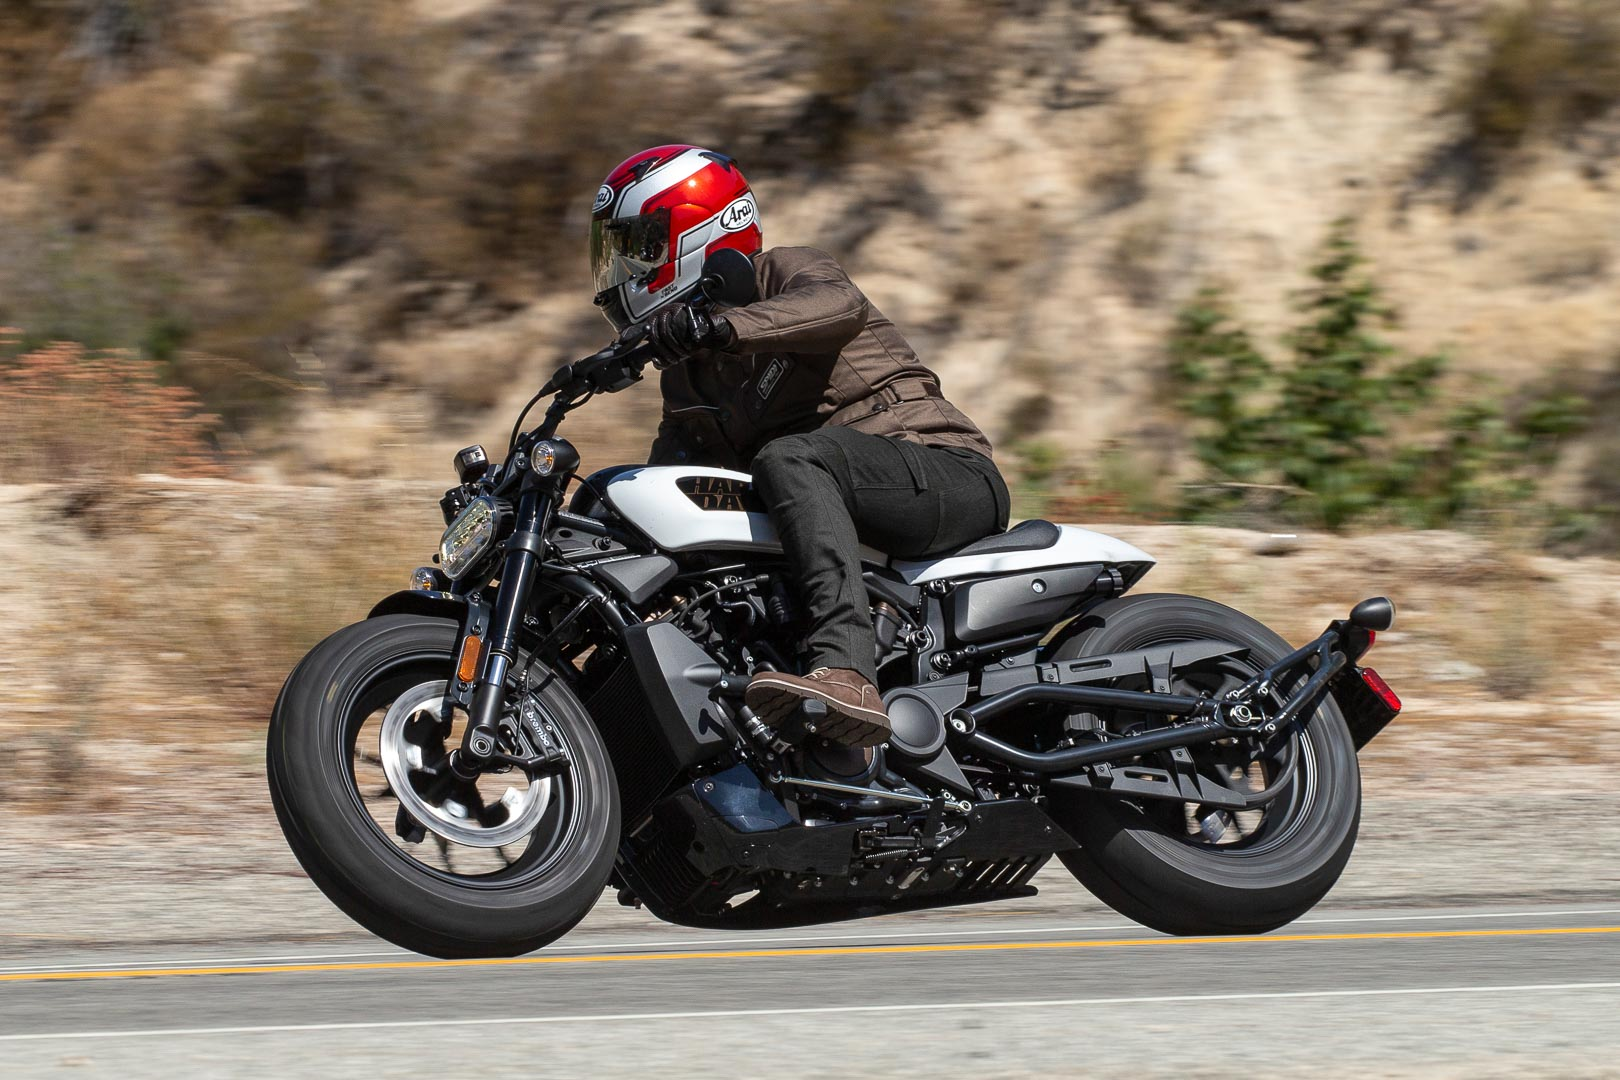 2021 Harley-Davidson Sportster S Review - For Sale